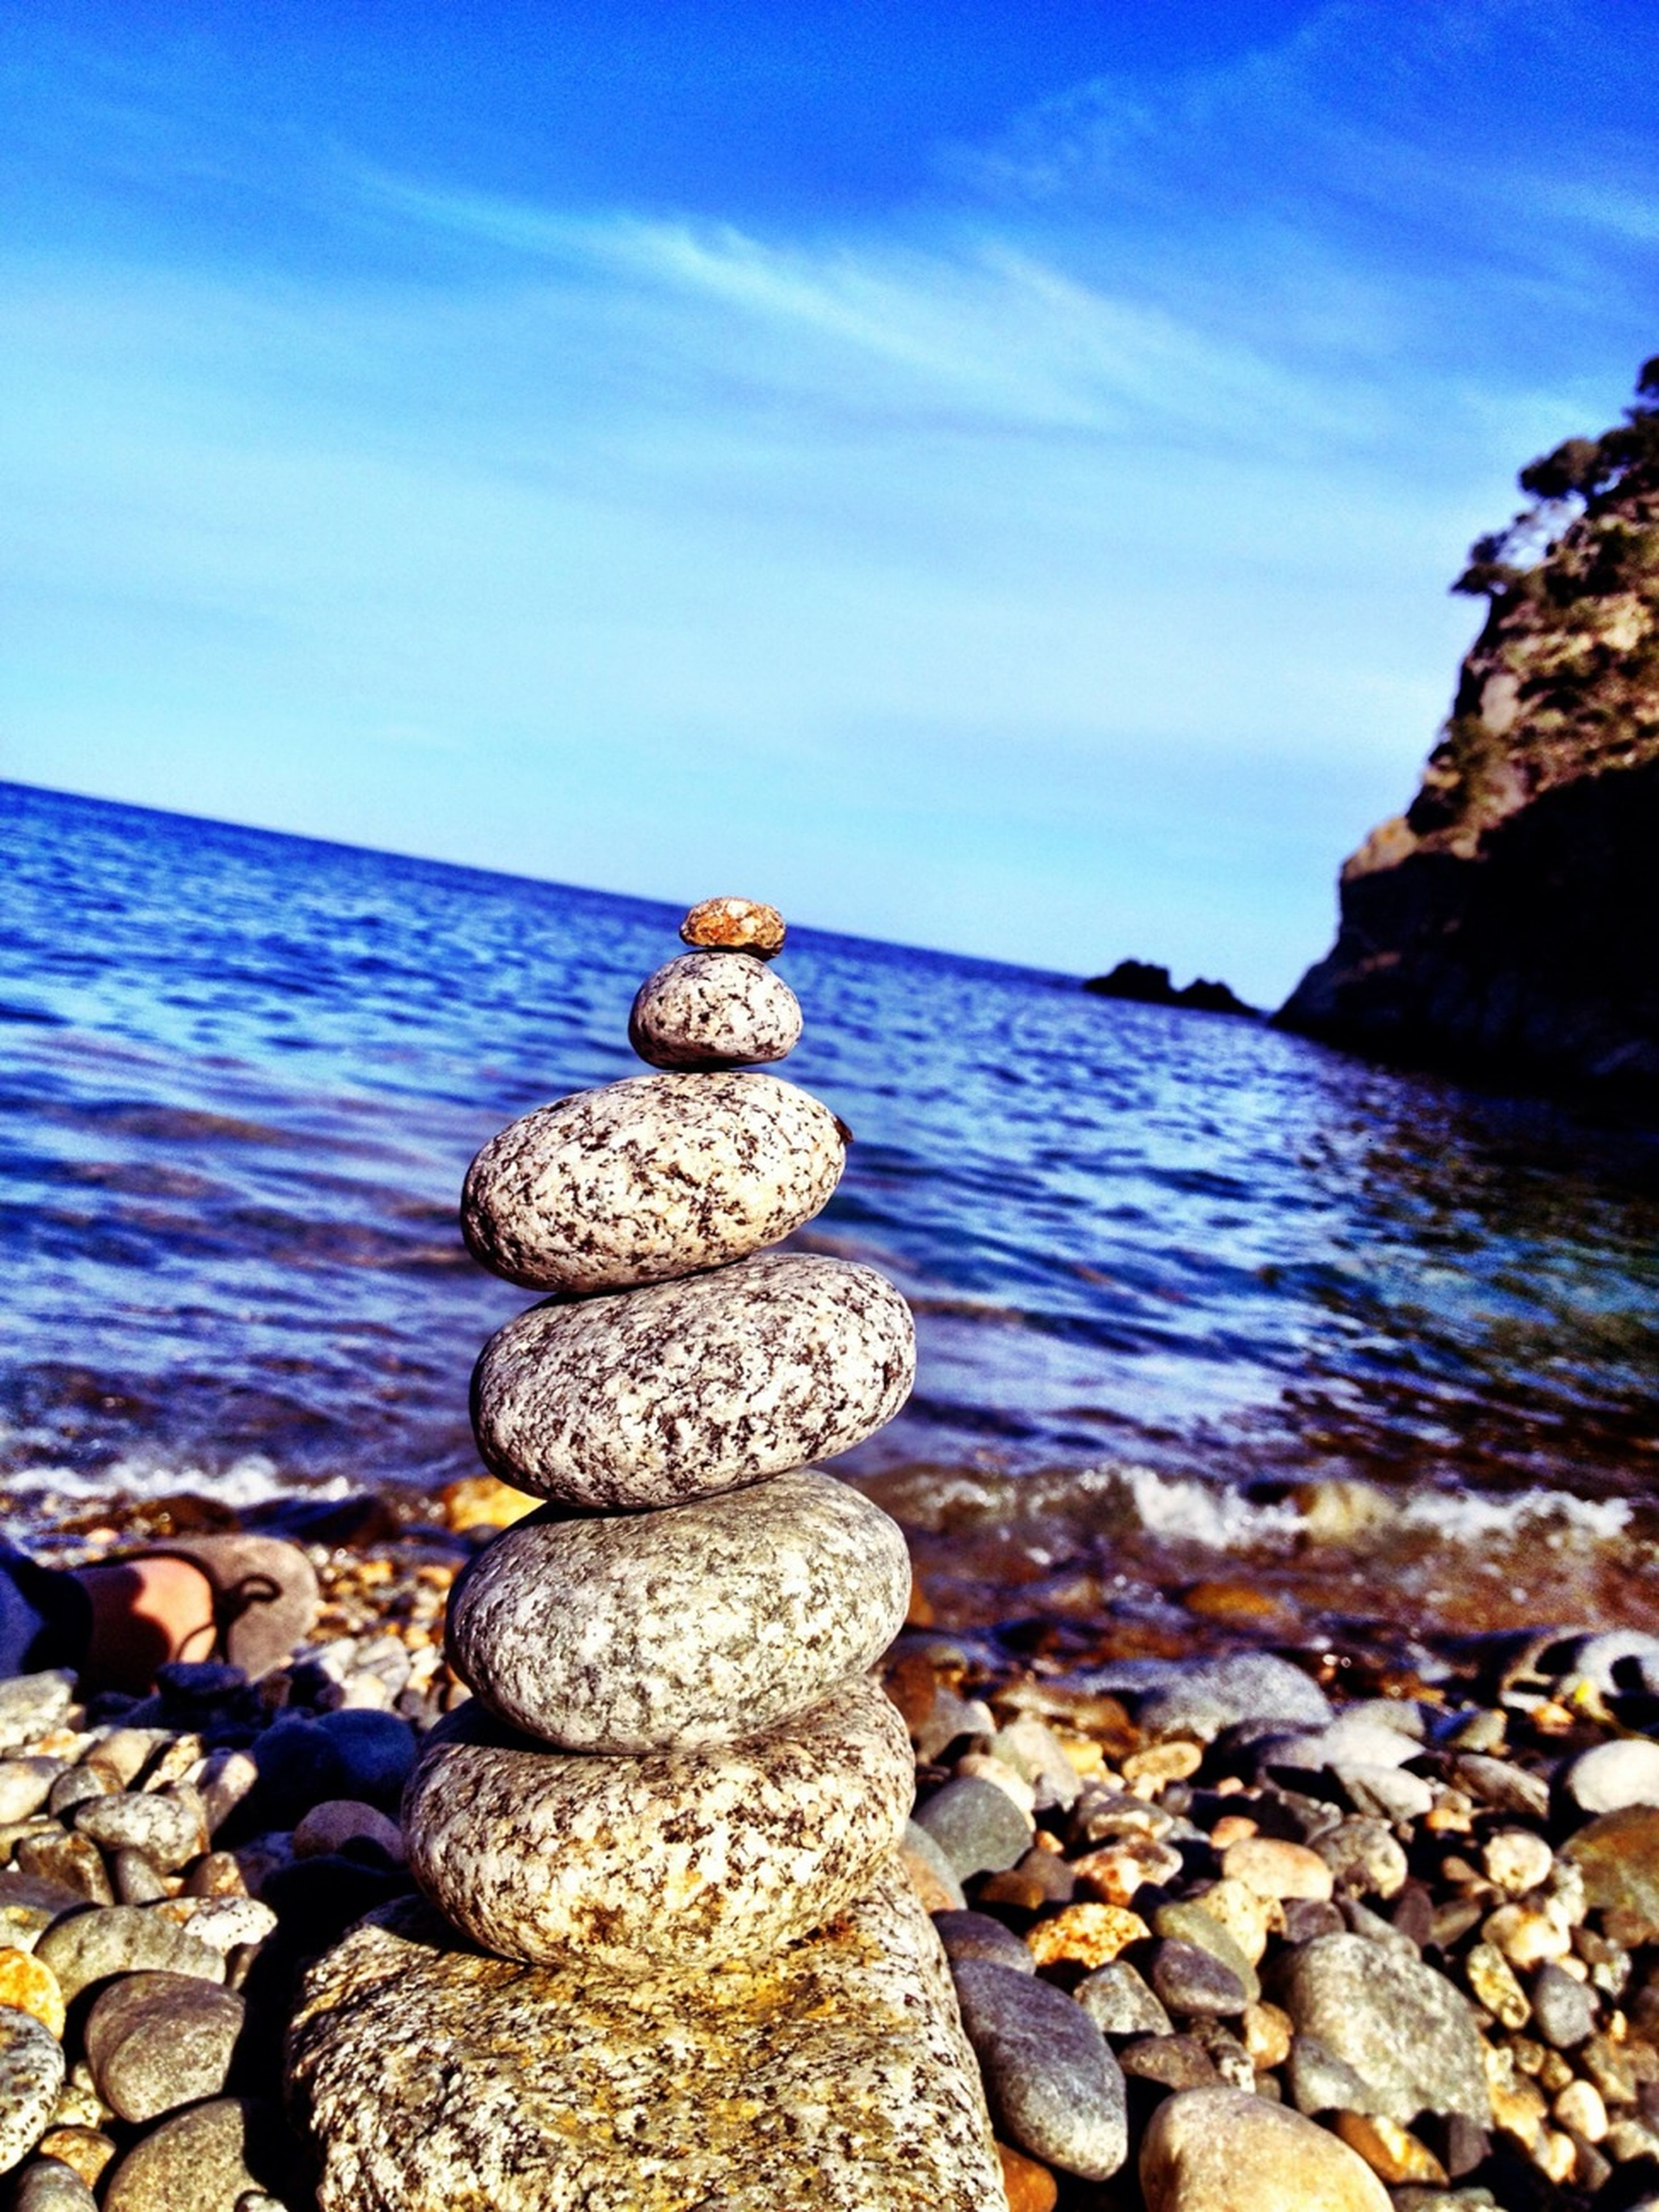 sea, water, rock - object, stone - object, pebble, horizon over water, blue, sky, tranquility, beach, tranquil scene, scenics, beauty in nature, shore, stone, nature, rock, stack, idyllic, cloud - sky